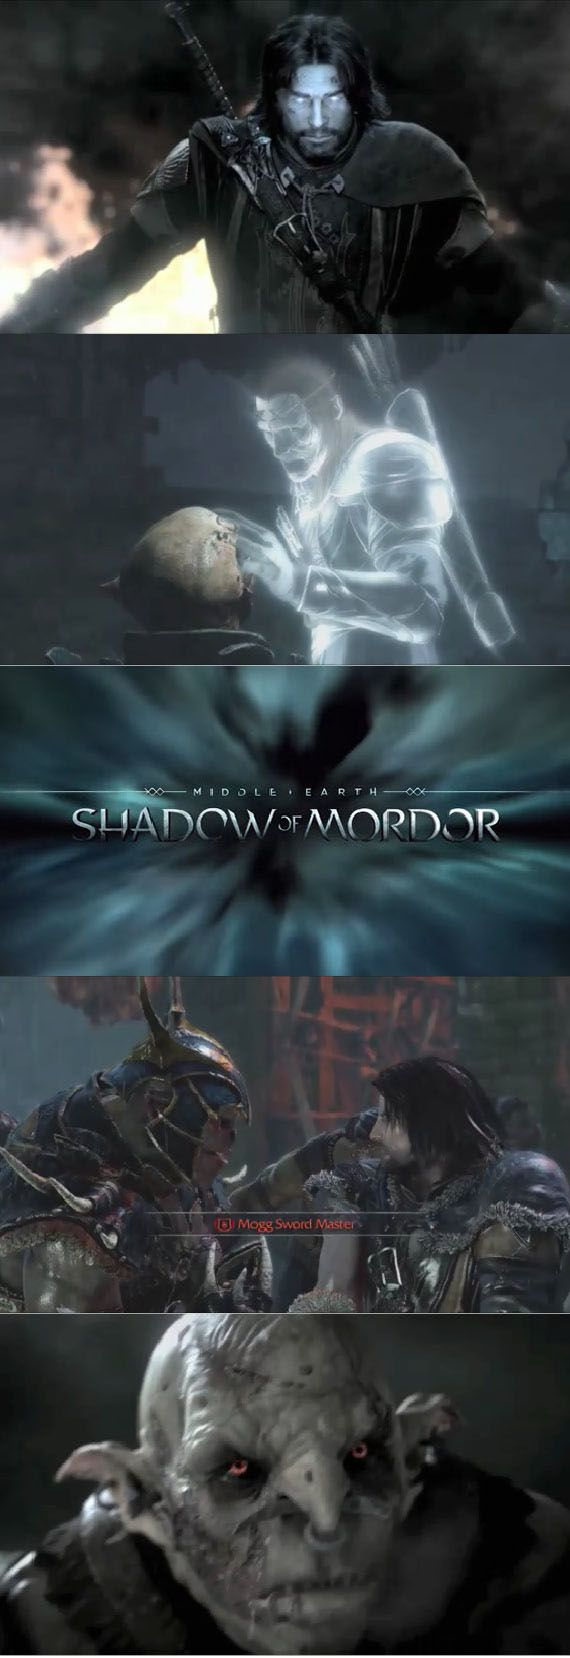 #RPG Series In #MiddleEarth #ShadowofMordor a new hero emerges and every mission counts! http://www.levelgamingground.com/shadow-of-mordor-review.html